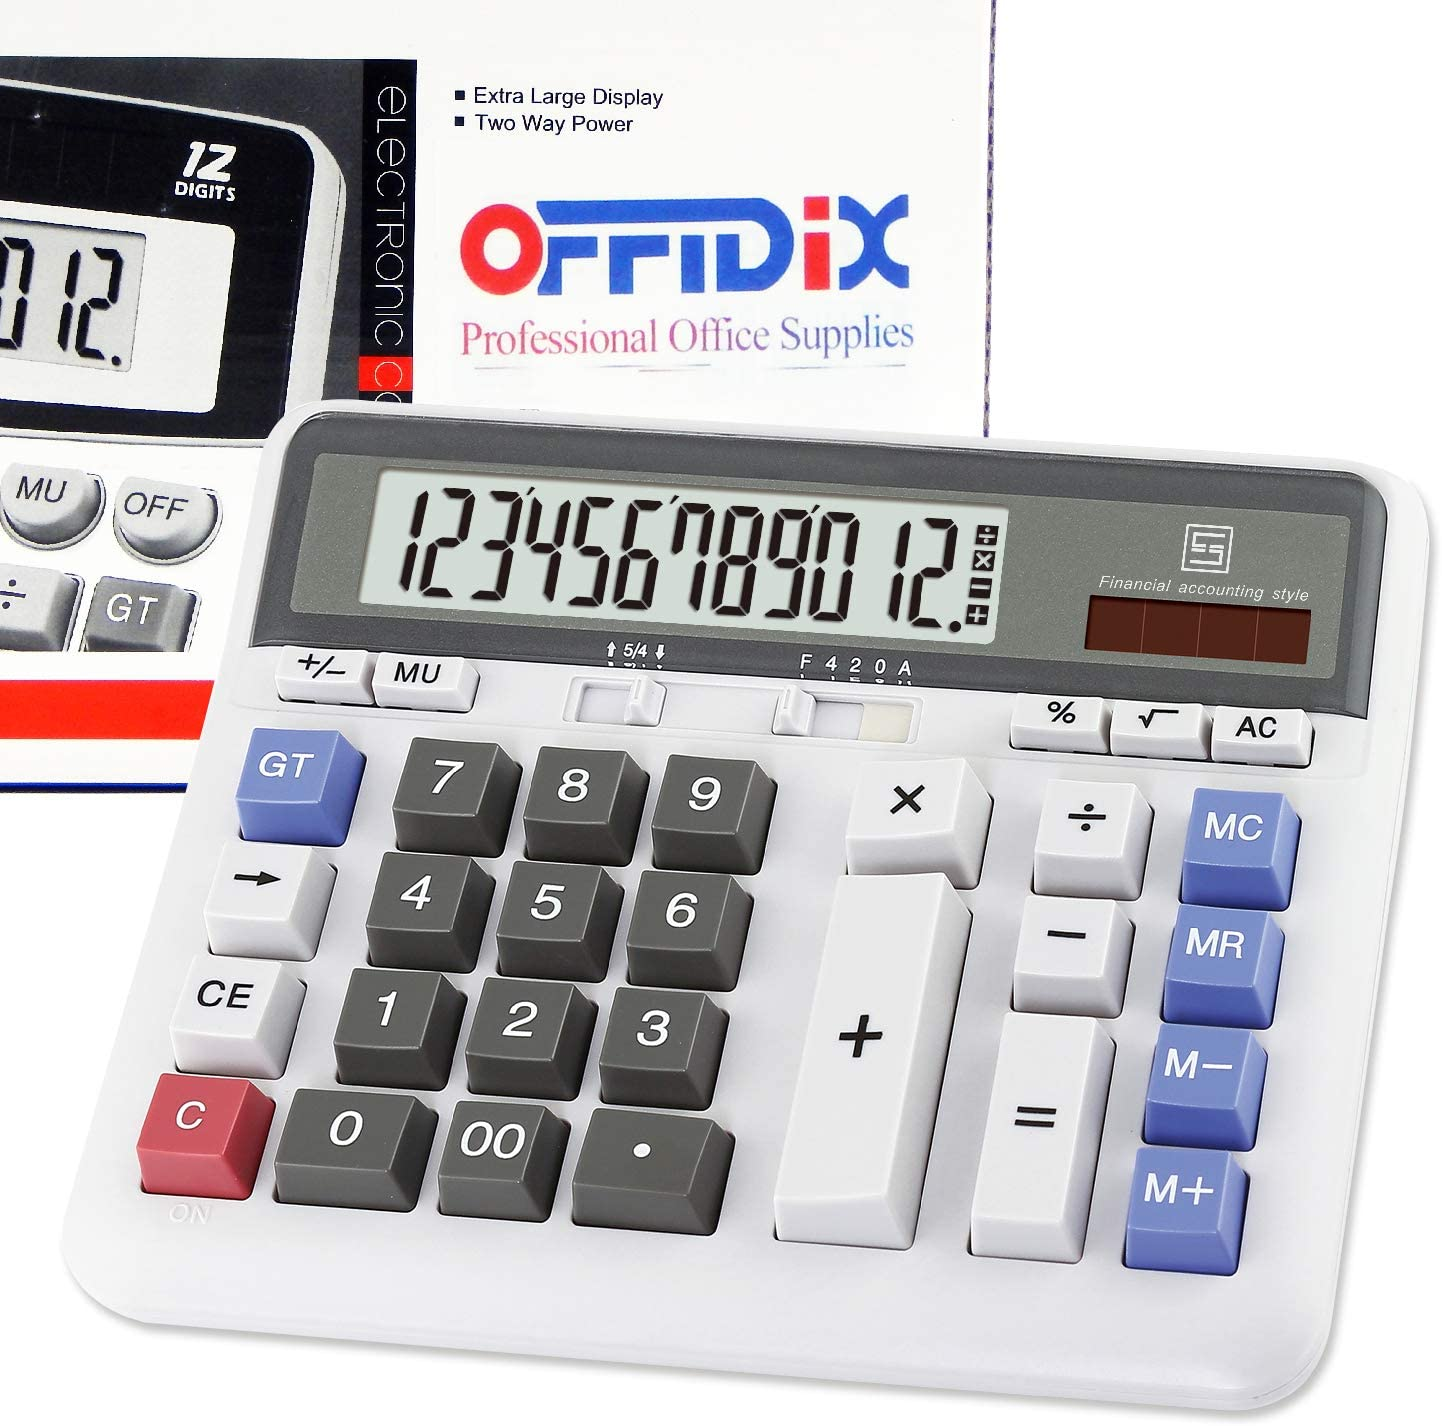 OFFIDIX Office Computer Key Electronic Calculator, Financial Calculators for Bank Stuff and Accouter, Financial Accounting Style 12-Digit Display with Battery and Solar Desktop Calculator Fathers' Day